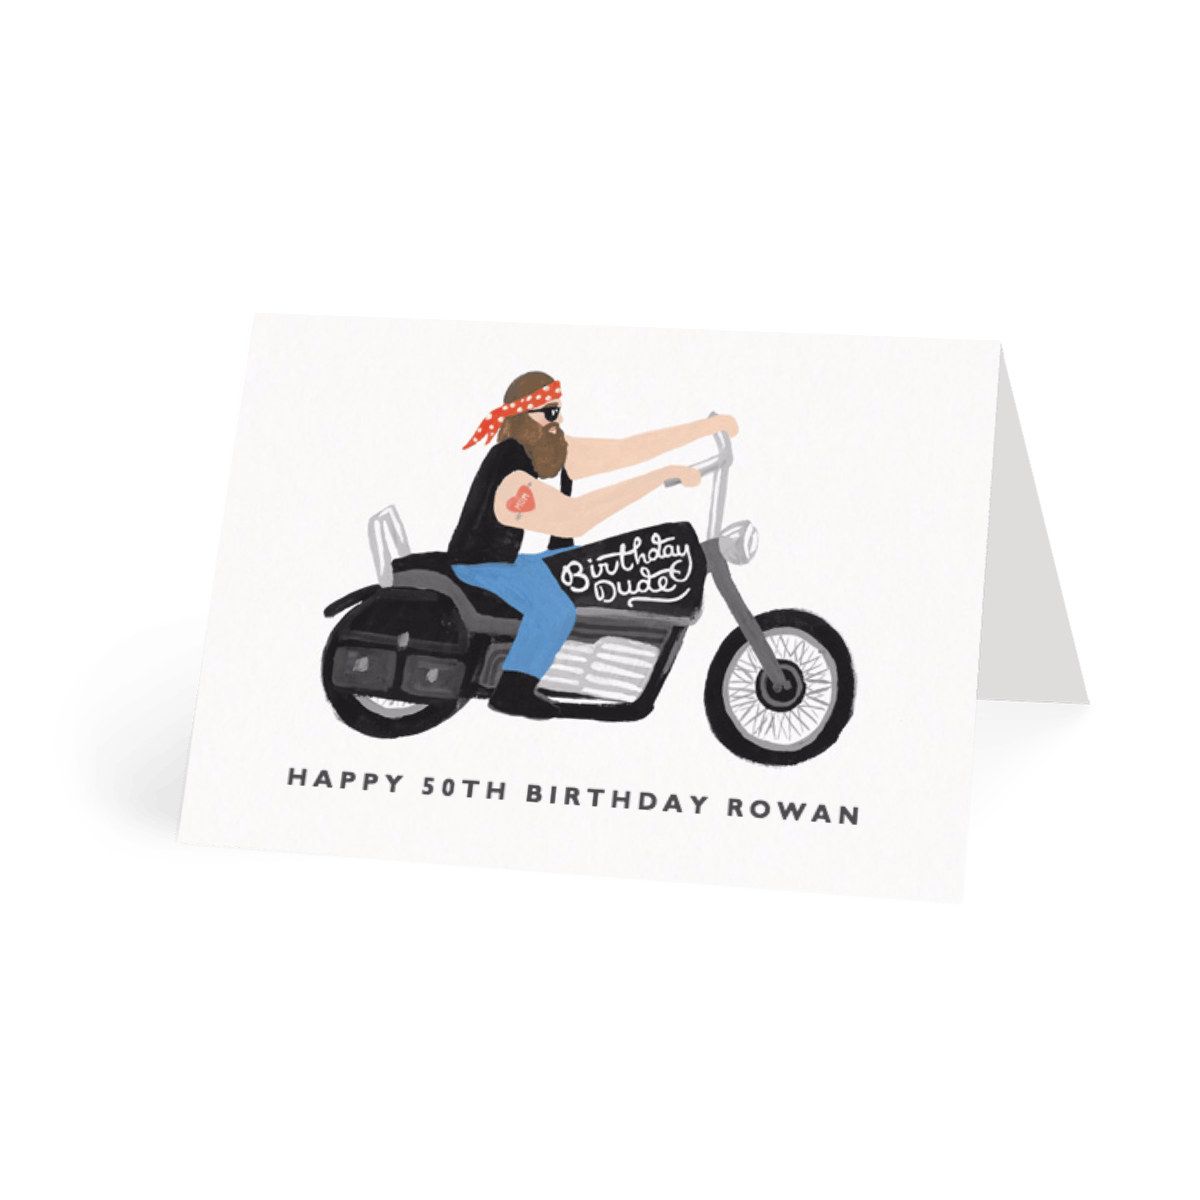 Https%3a%2f%2fwww.papier.com%2fproduct image%2f11245%2f14%2fbirthday dude 2859 vorderseite 1474463048.png?ixlib=rb 1.1